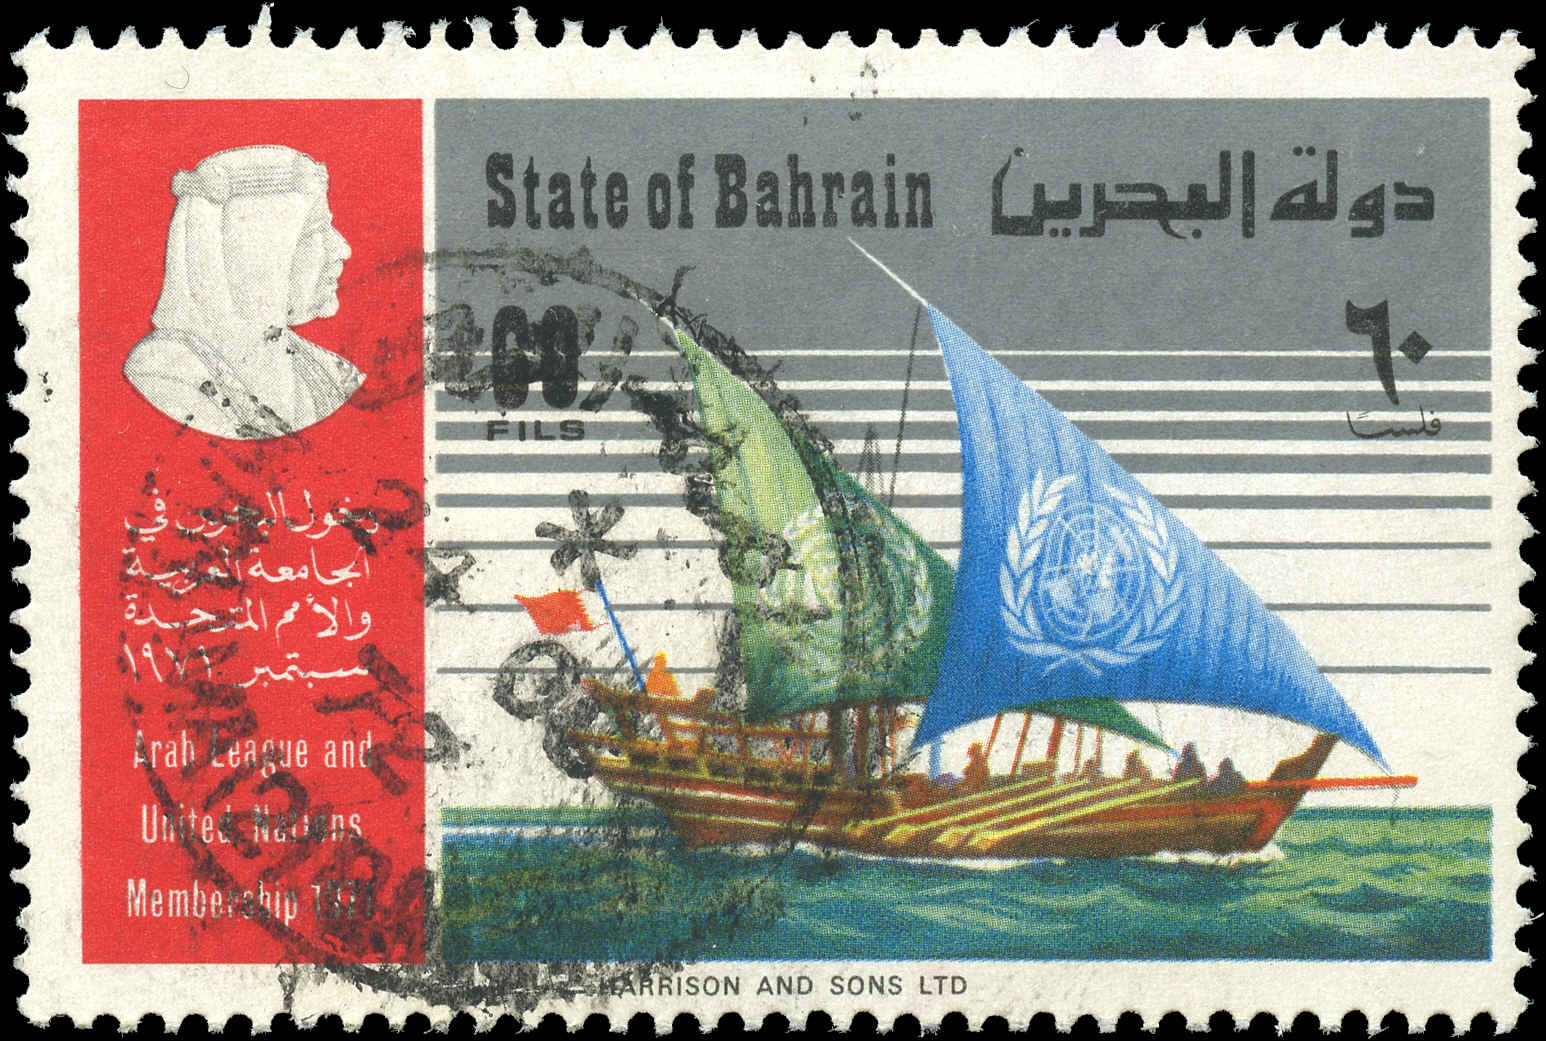 Bahrain Stamp, Scott #187, F+, Used